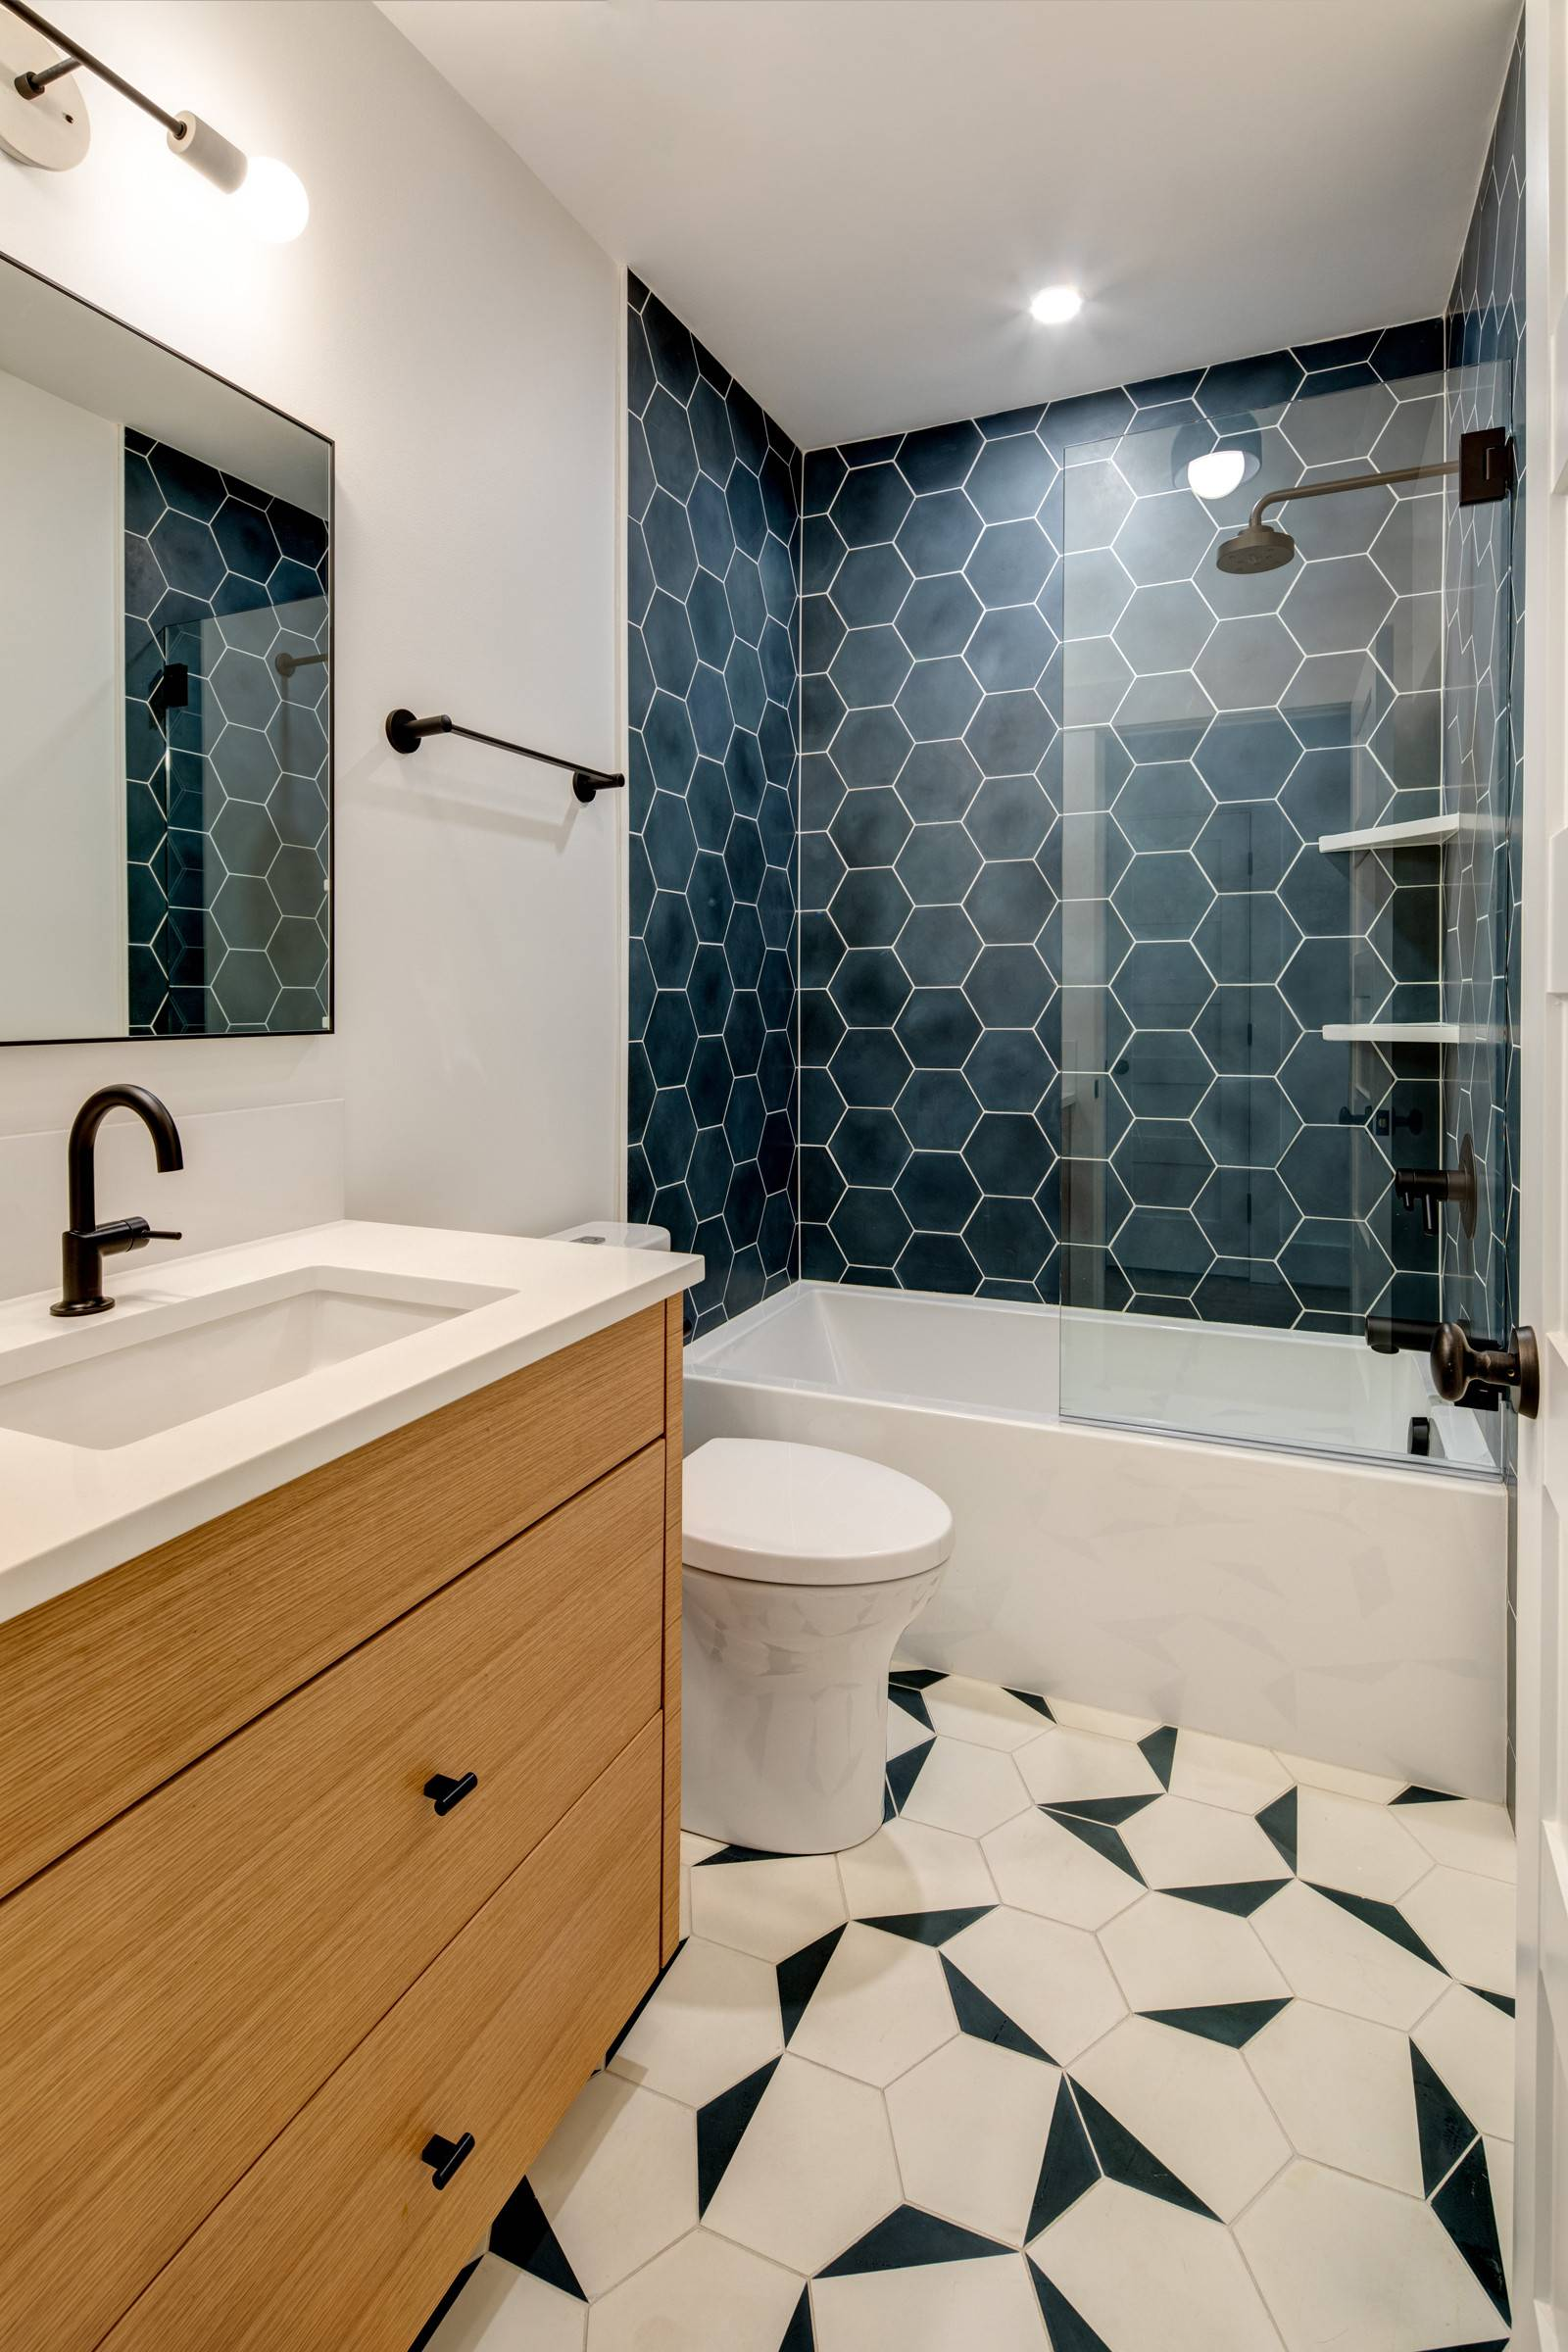 Two-different-colored-hexagonal-styles-adorn-both-the-walls-and-the-floor-of-this-contemporary-bathroom-43154